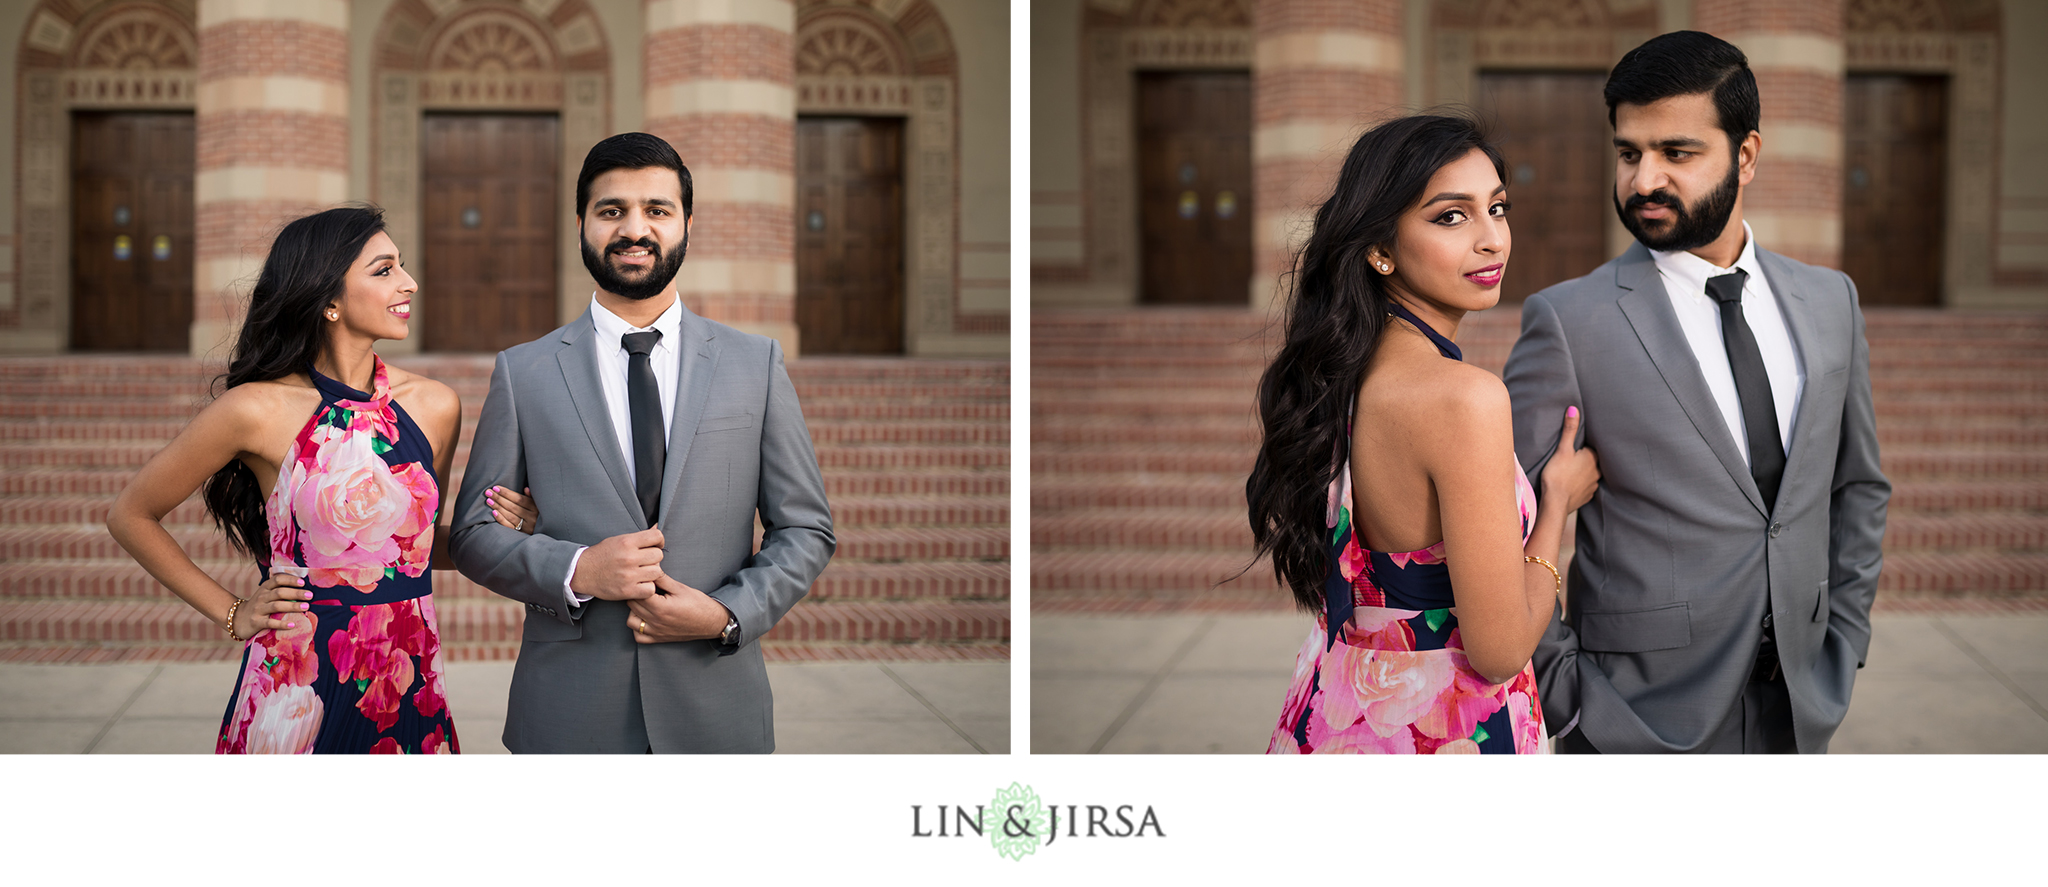 18-UCLA-Los-Angeles-Engagement-Photography